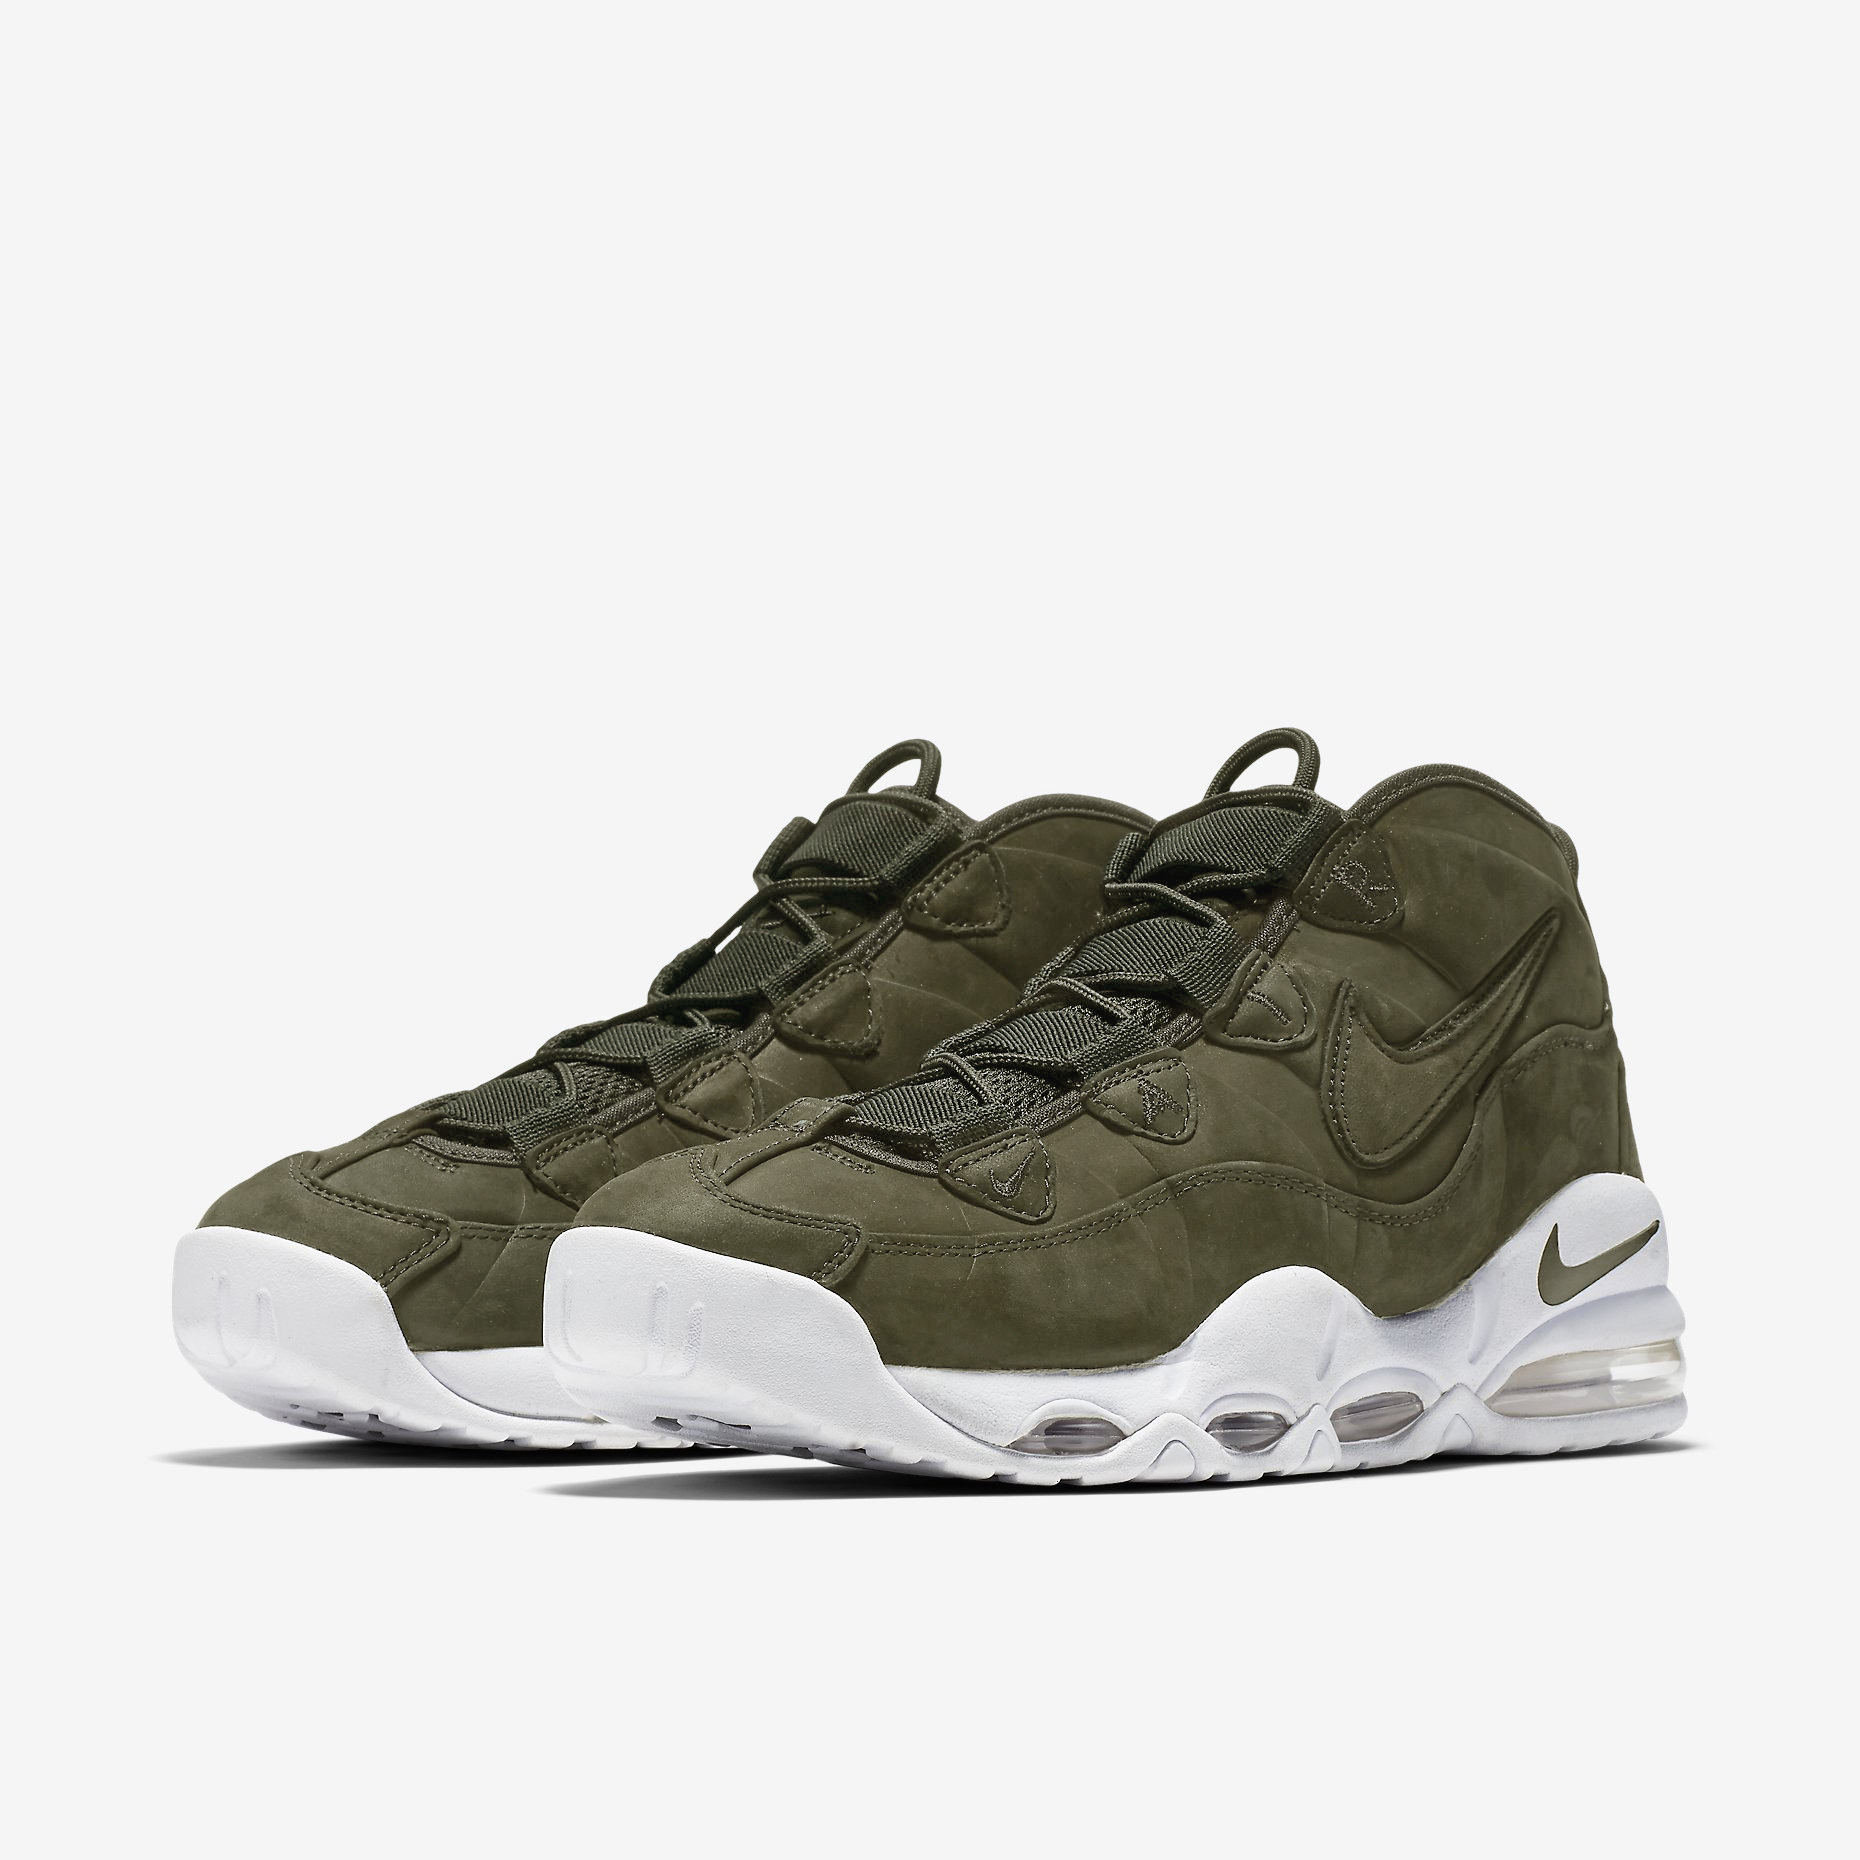 Max Haze Uptempo » Urban « Collection Nike Air 5LA3Rj4